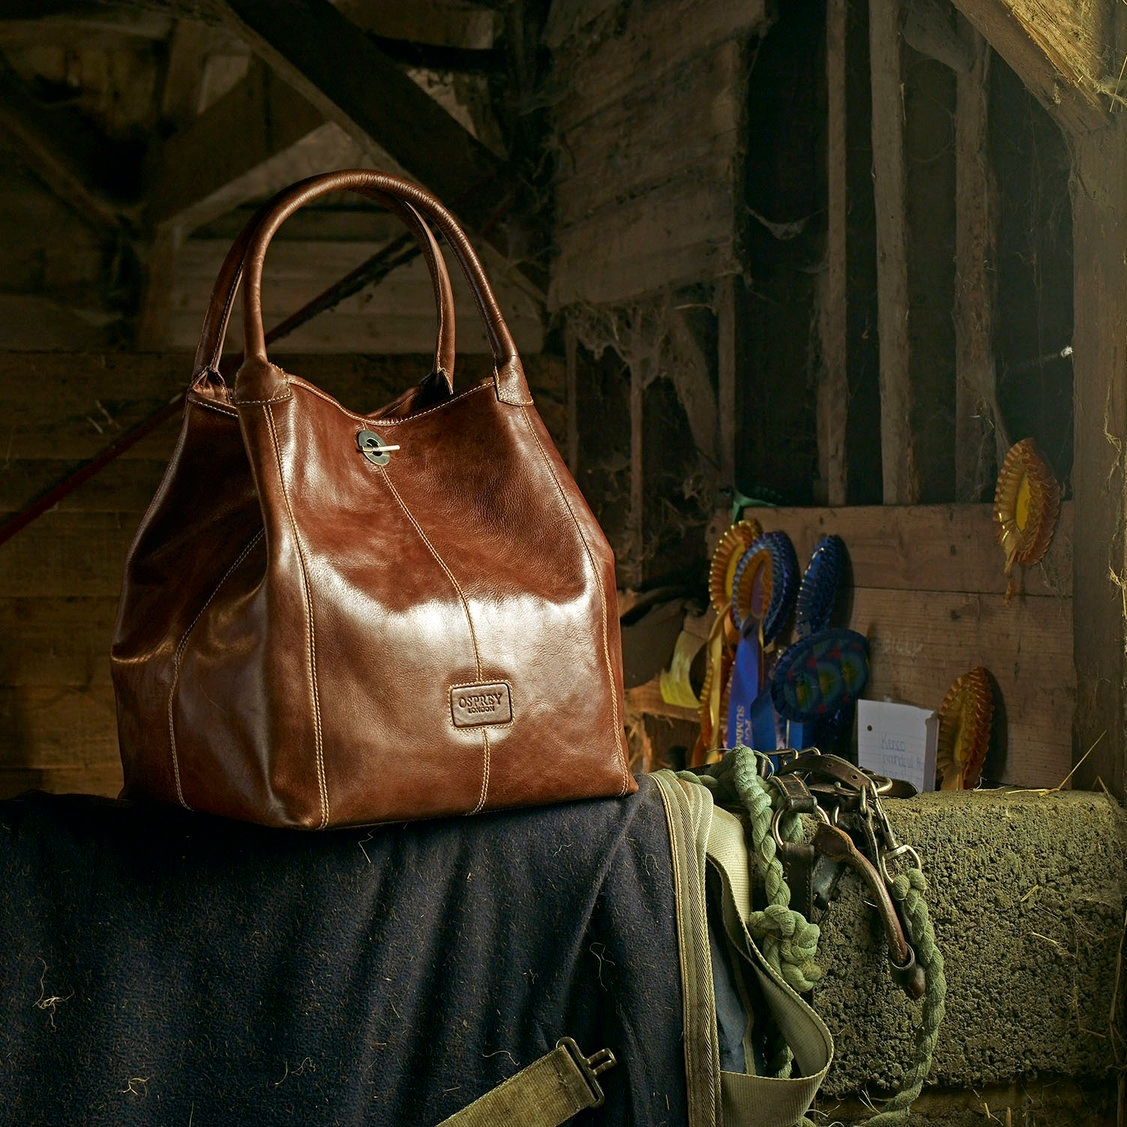 osprey_bag_stable_product_photography